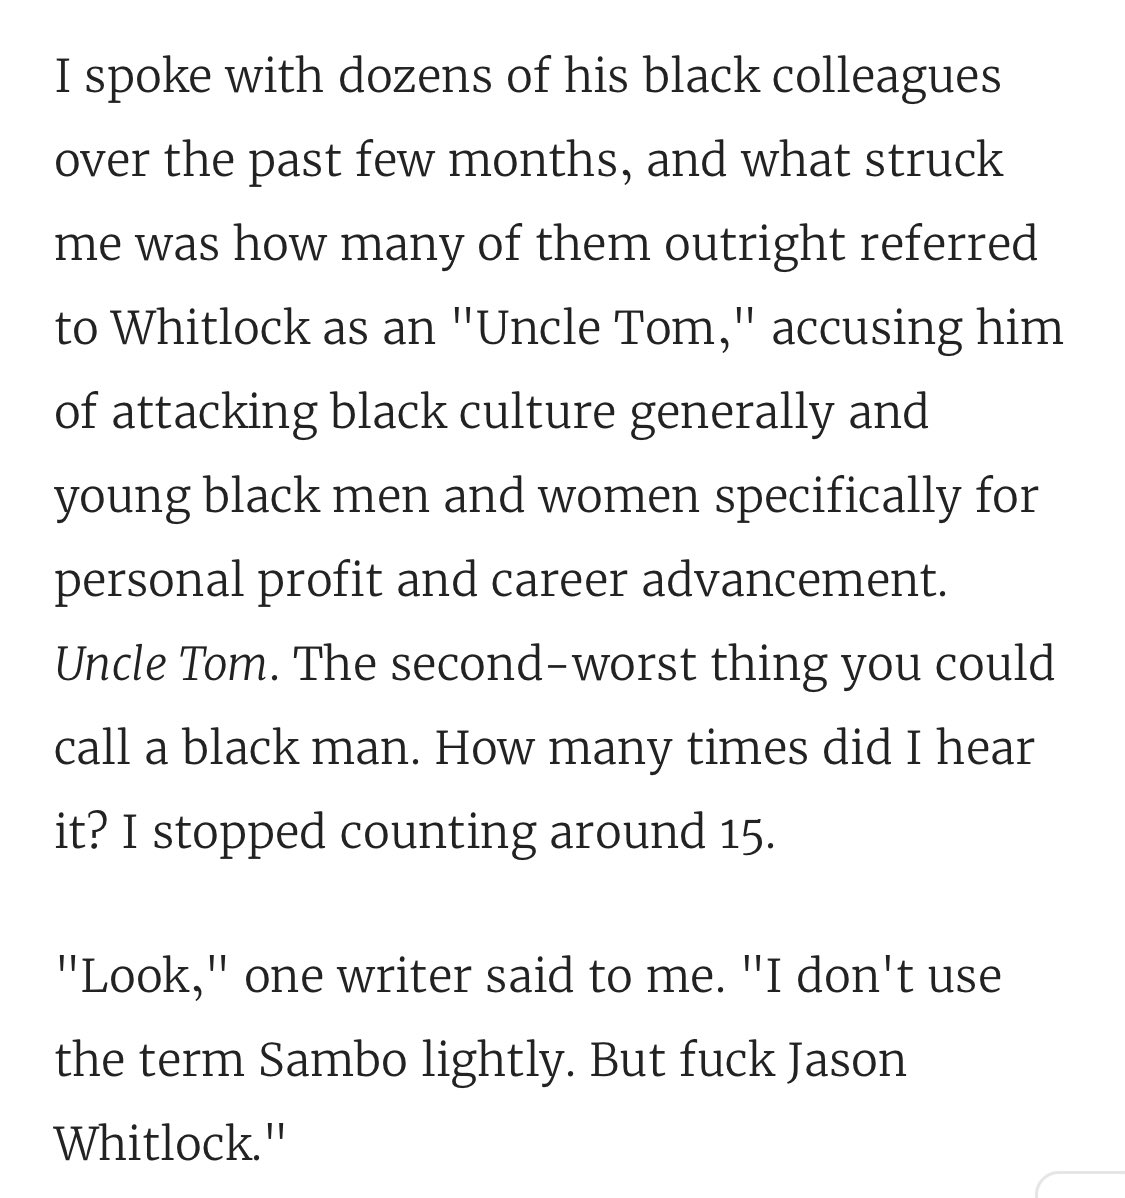 this is who jason whitlock is (by greg howard in 2014): https://t.co/6t9wjKt04T https://t.co/jq5XxYrB25